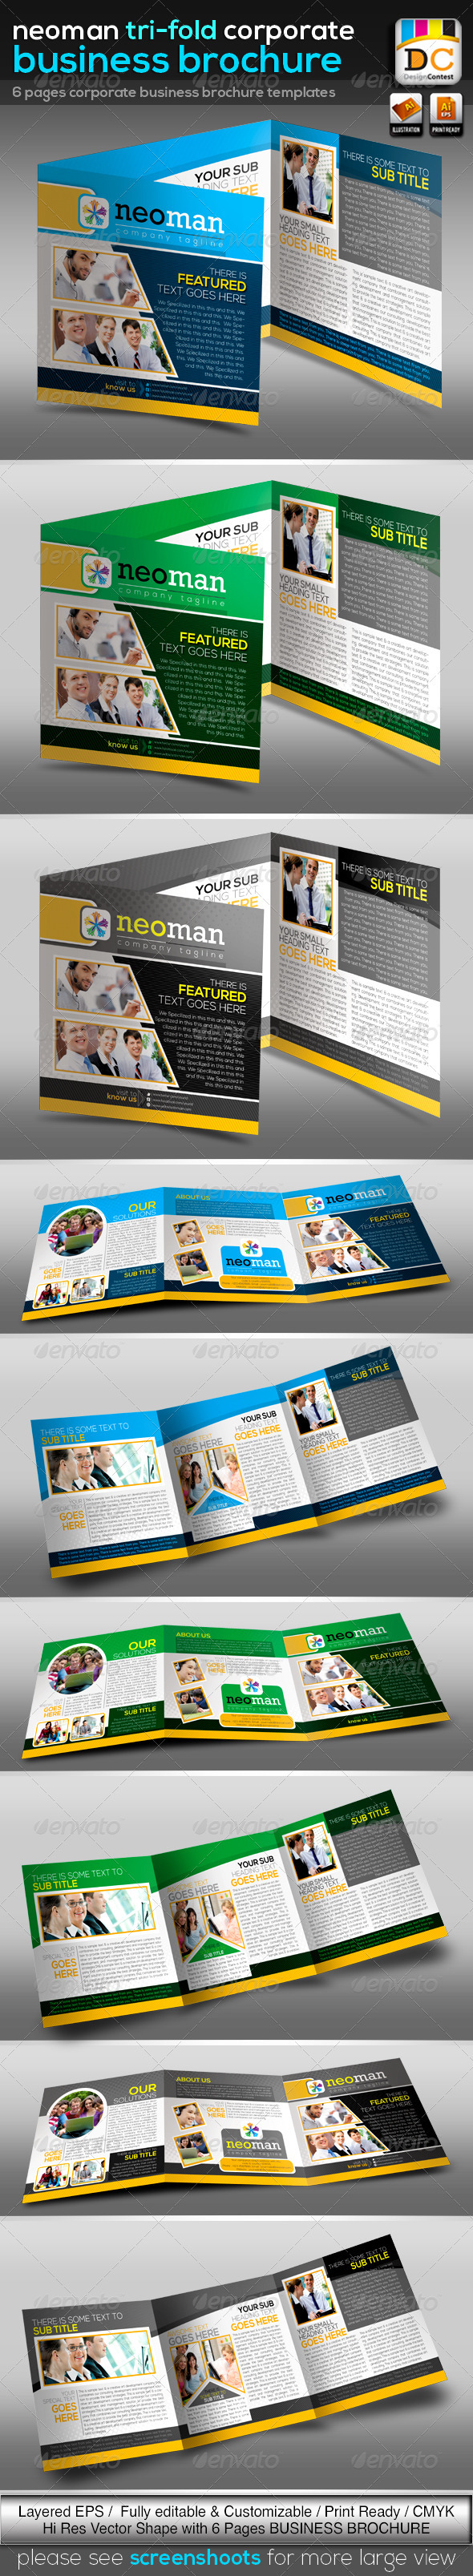 GraphicRiver NeoMan Tri-fold Corporate Business Brochure V-02 3693104